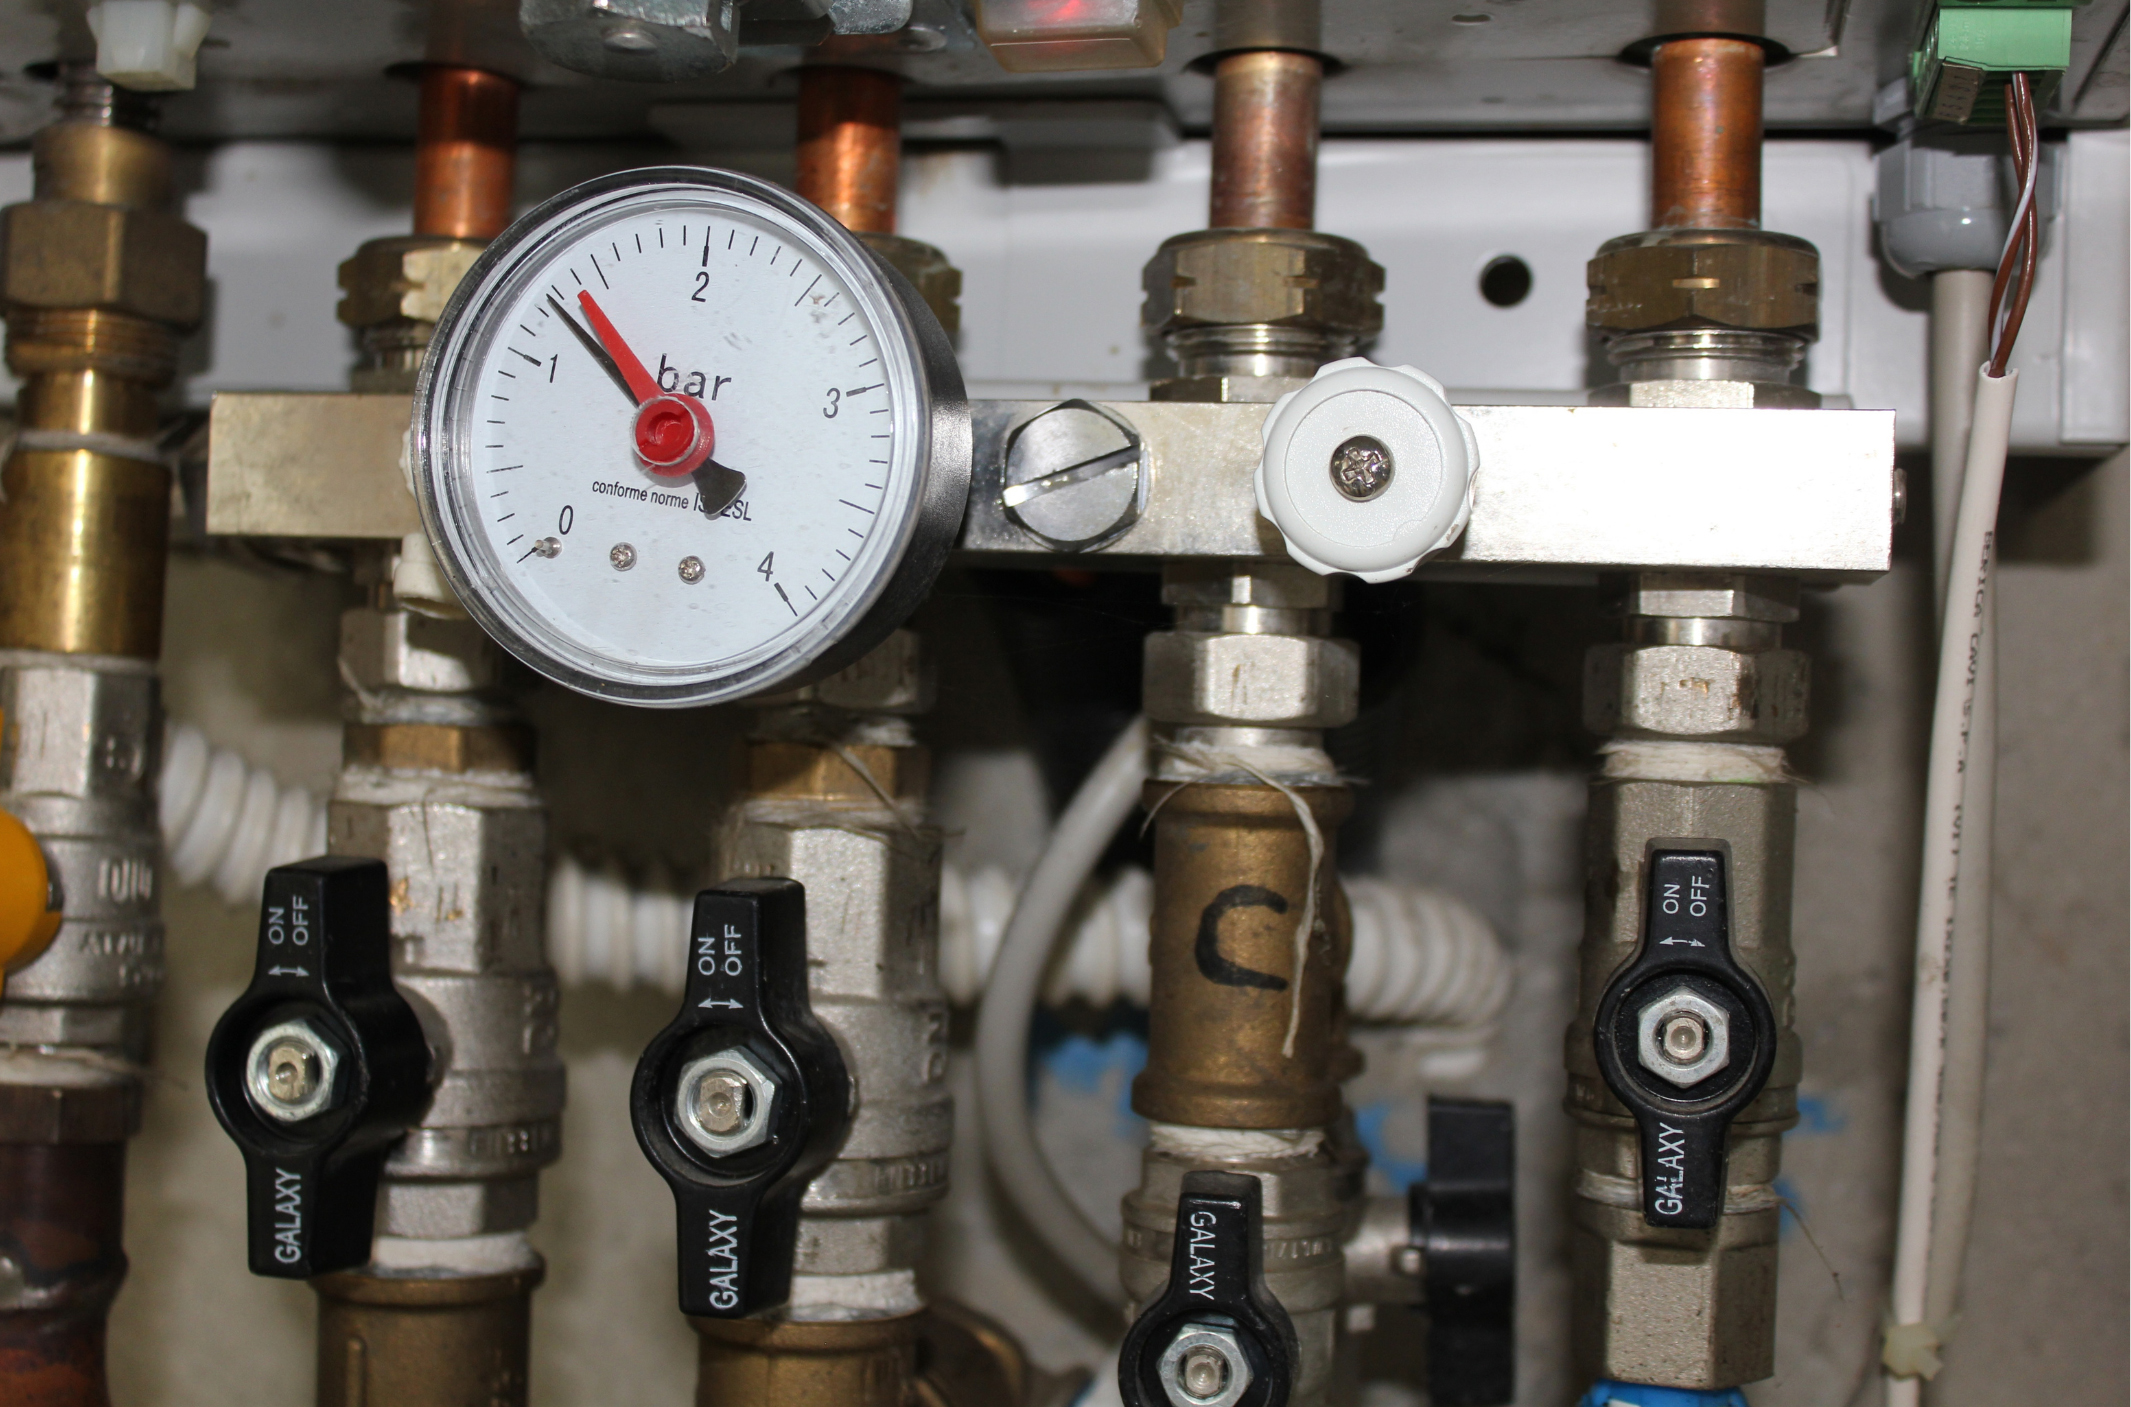 Fitting Wall Mounted Boilers Safely